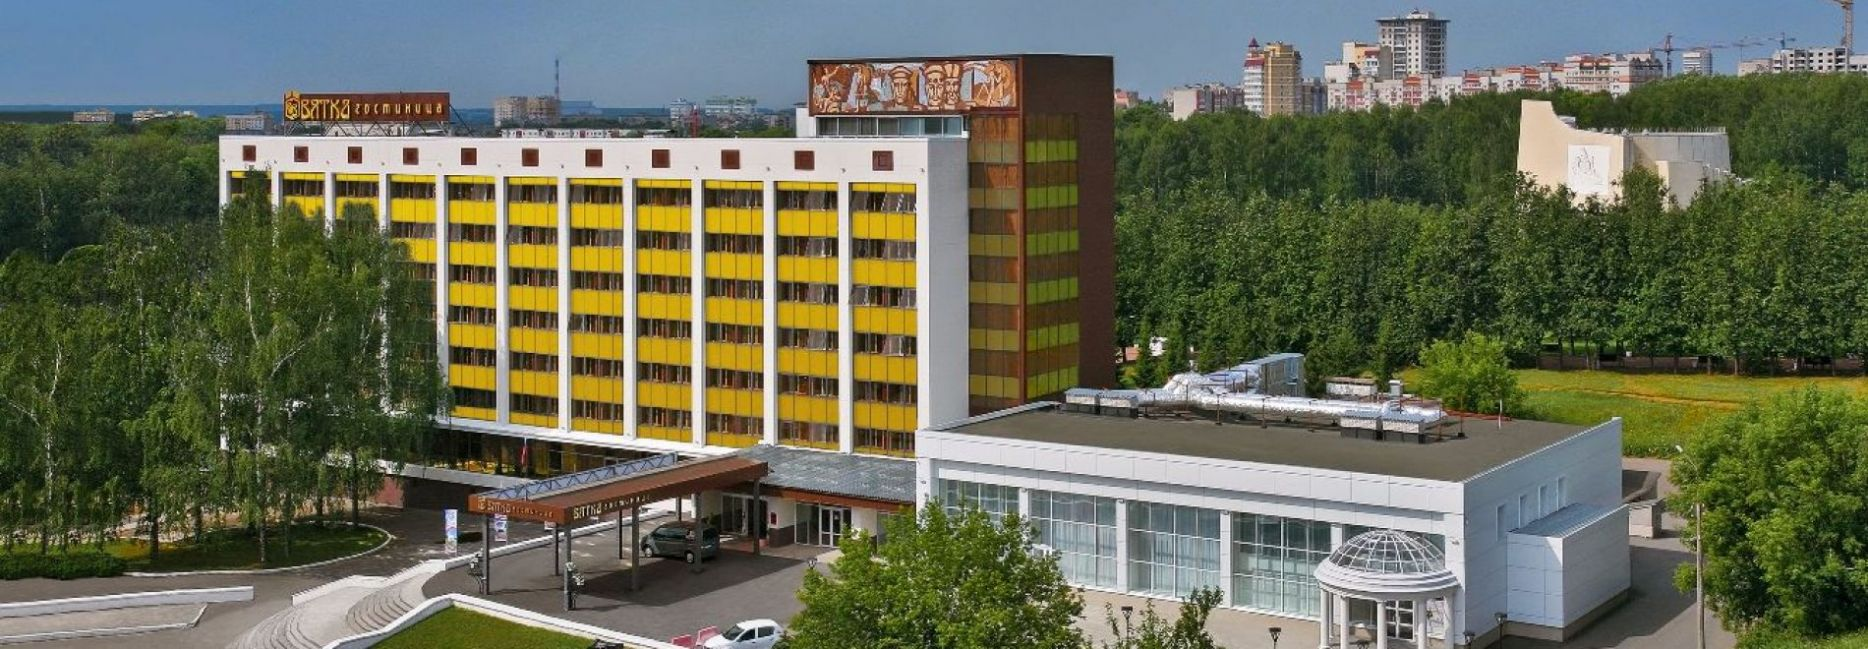 welcome to the website of the hotel Vyatka Kirov